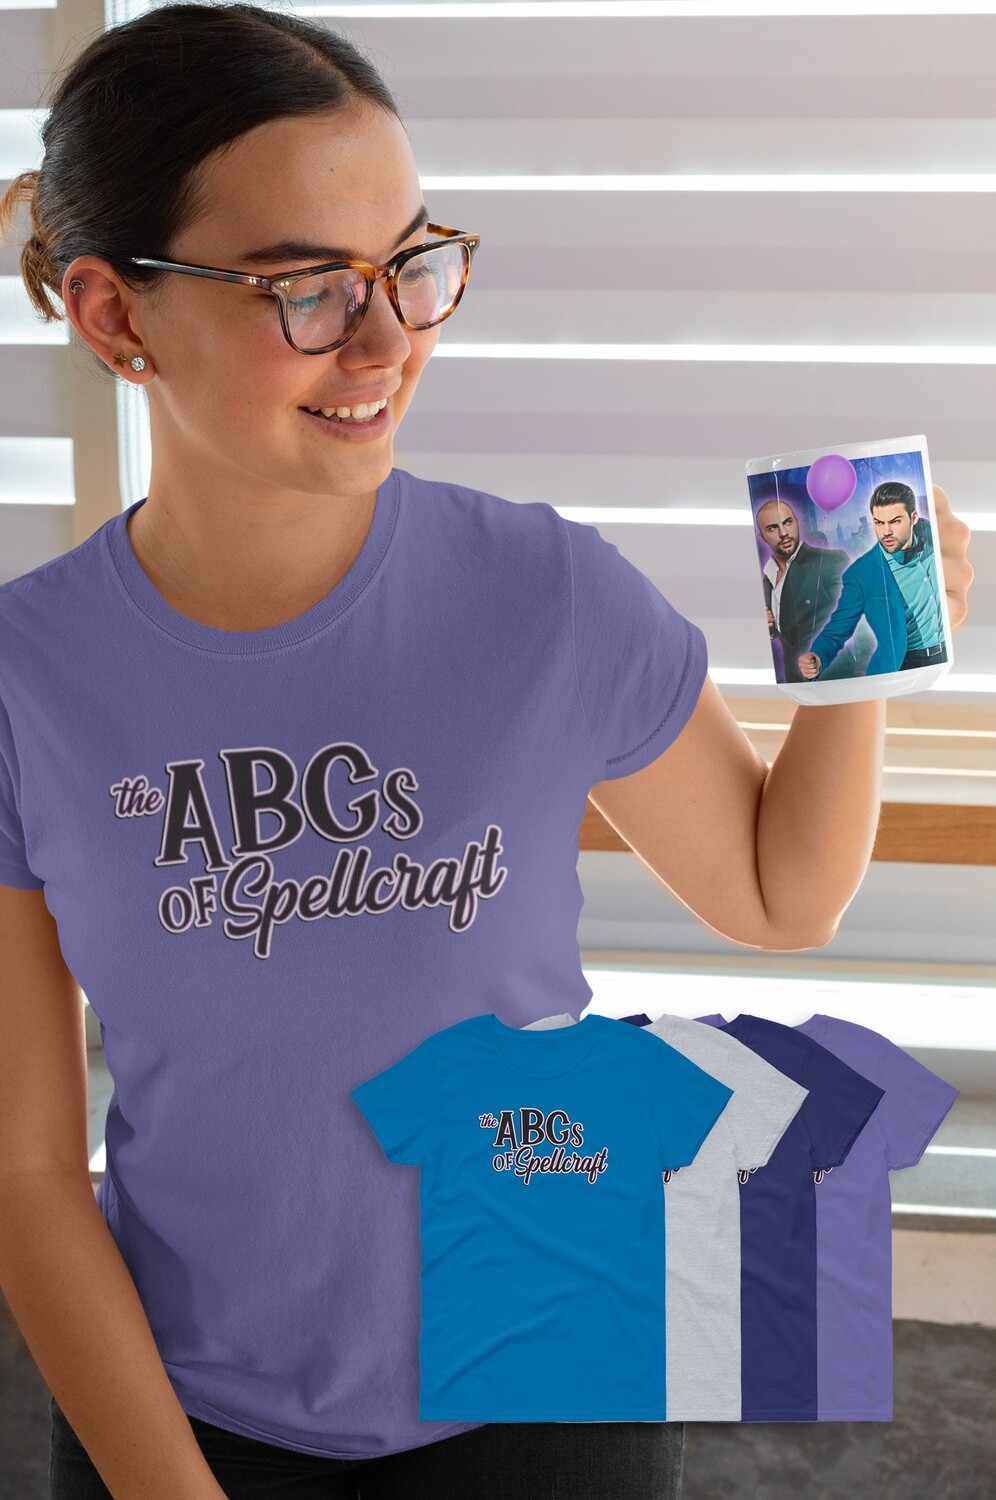 FUNDRAISER ABCs of Spellcraft Women's short sleeve t-shirt